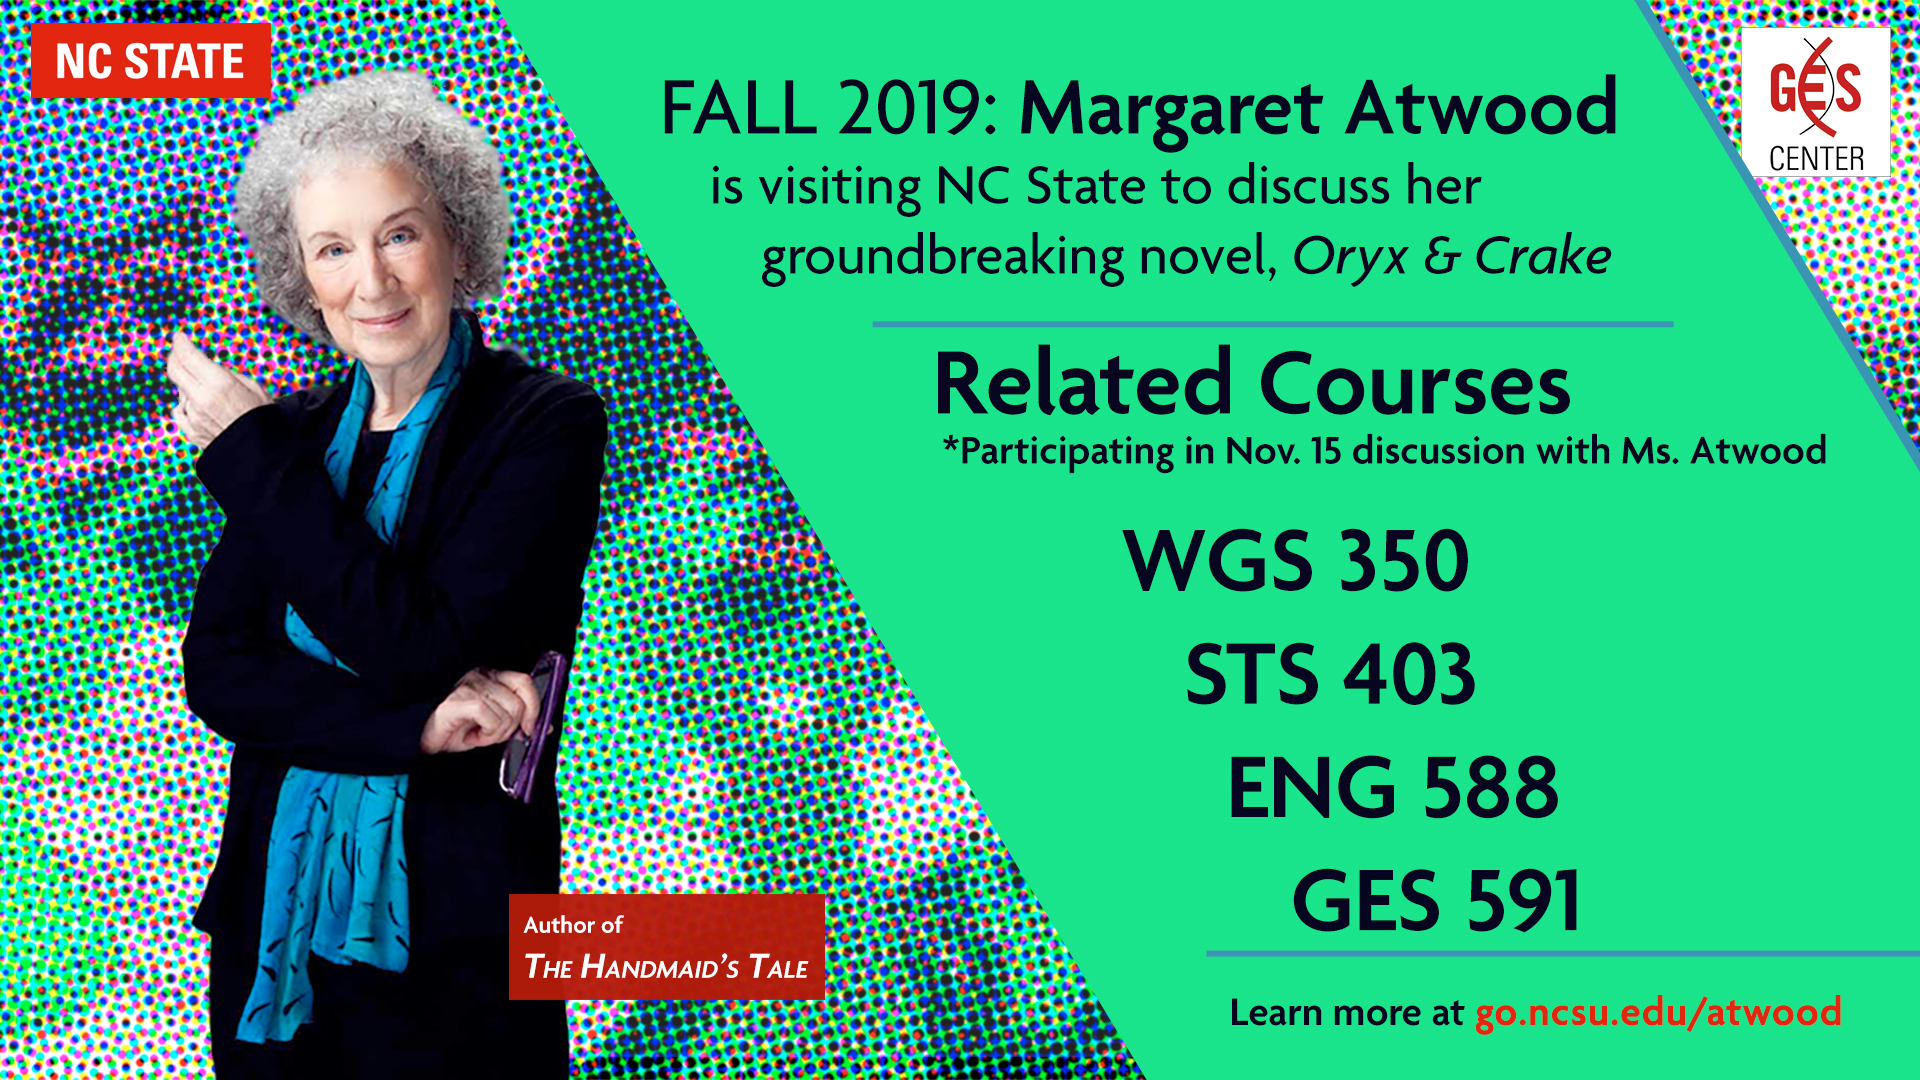 FALL 2019: Margaret Atwood is visiting NC State to discuss her groundbreaking novel, Oryx & Crake. Related Courses *Participating in Nov. 15 discussion with Ms. Atwood WGS 350 STS 403 GES 591